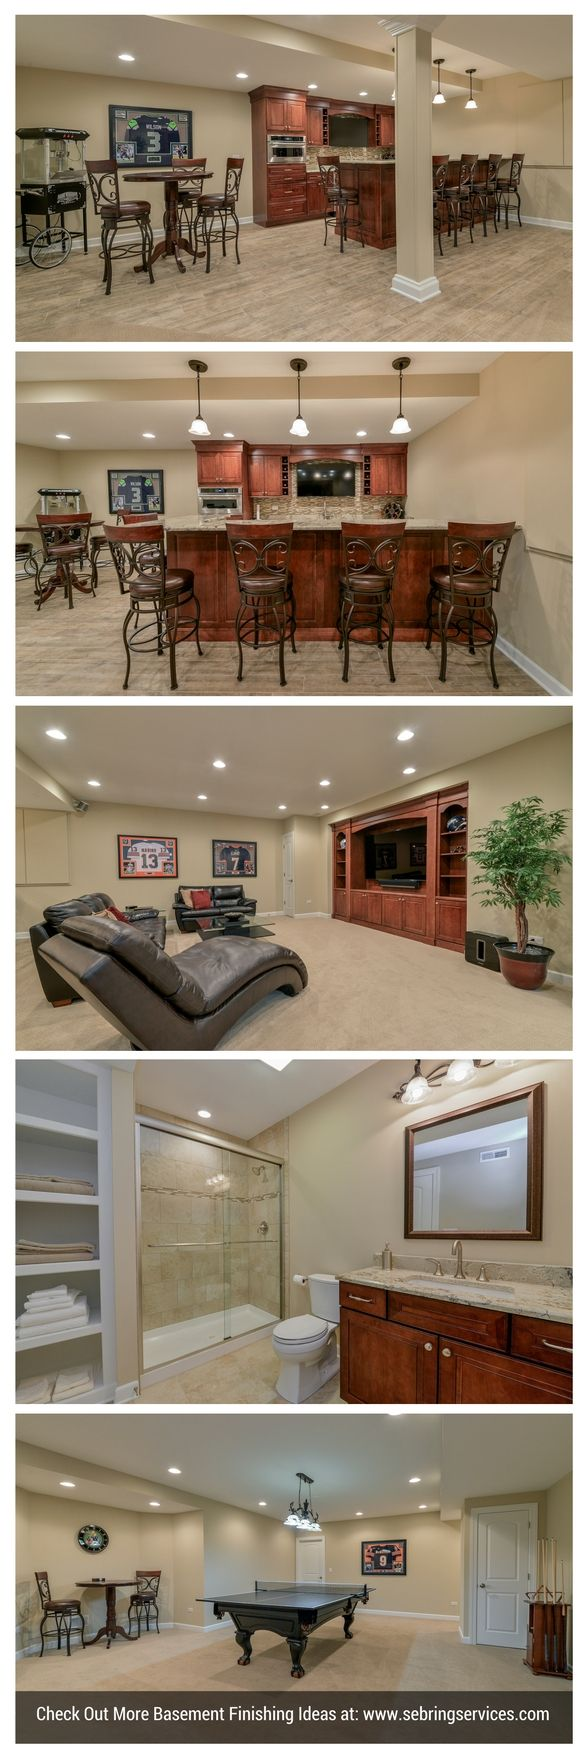 Finished basements are a large part of our business often featuring - Awesome Finished Basement Project Geneva Il